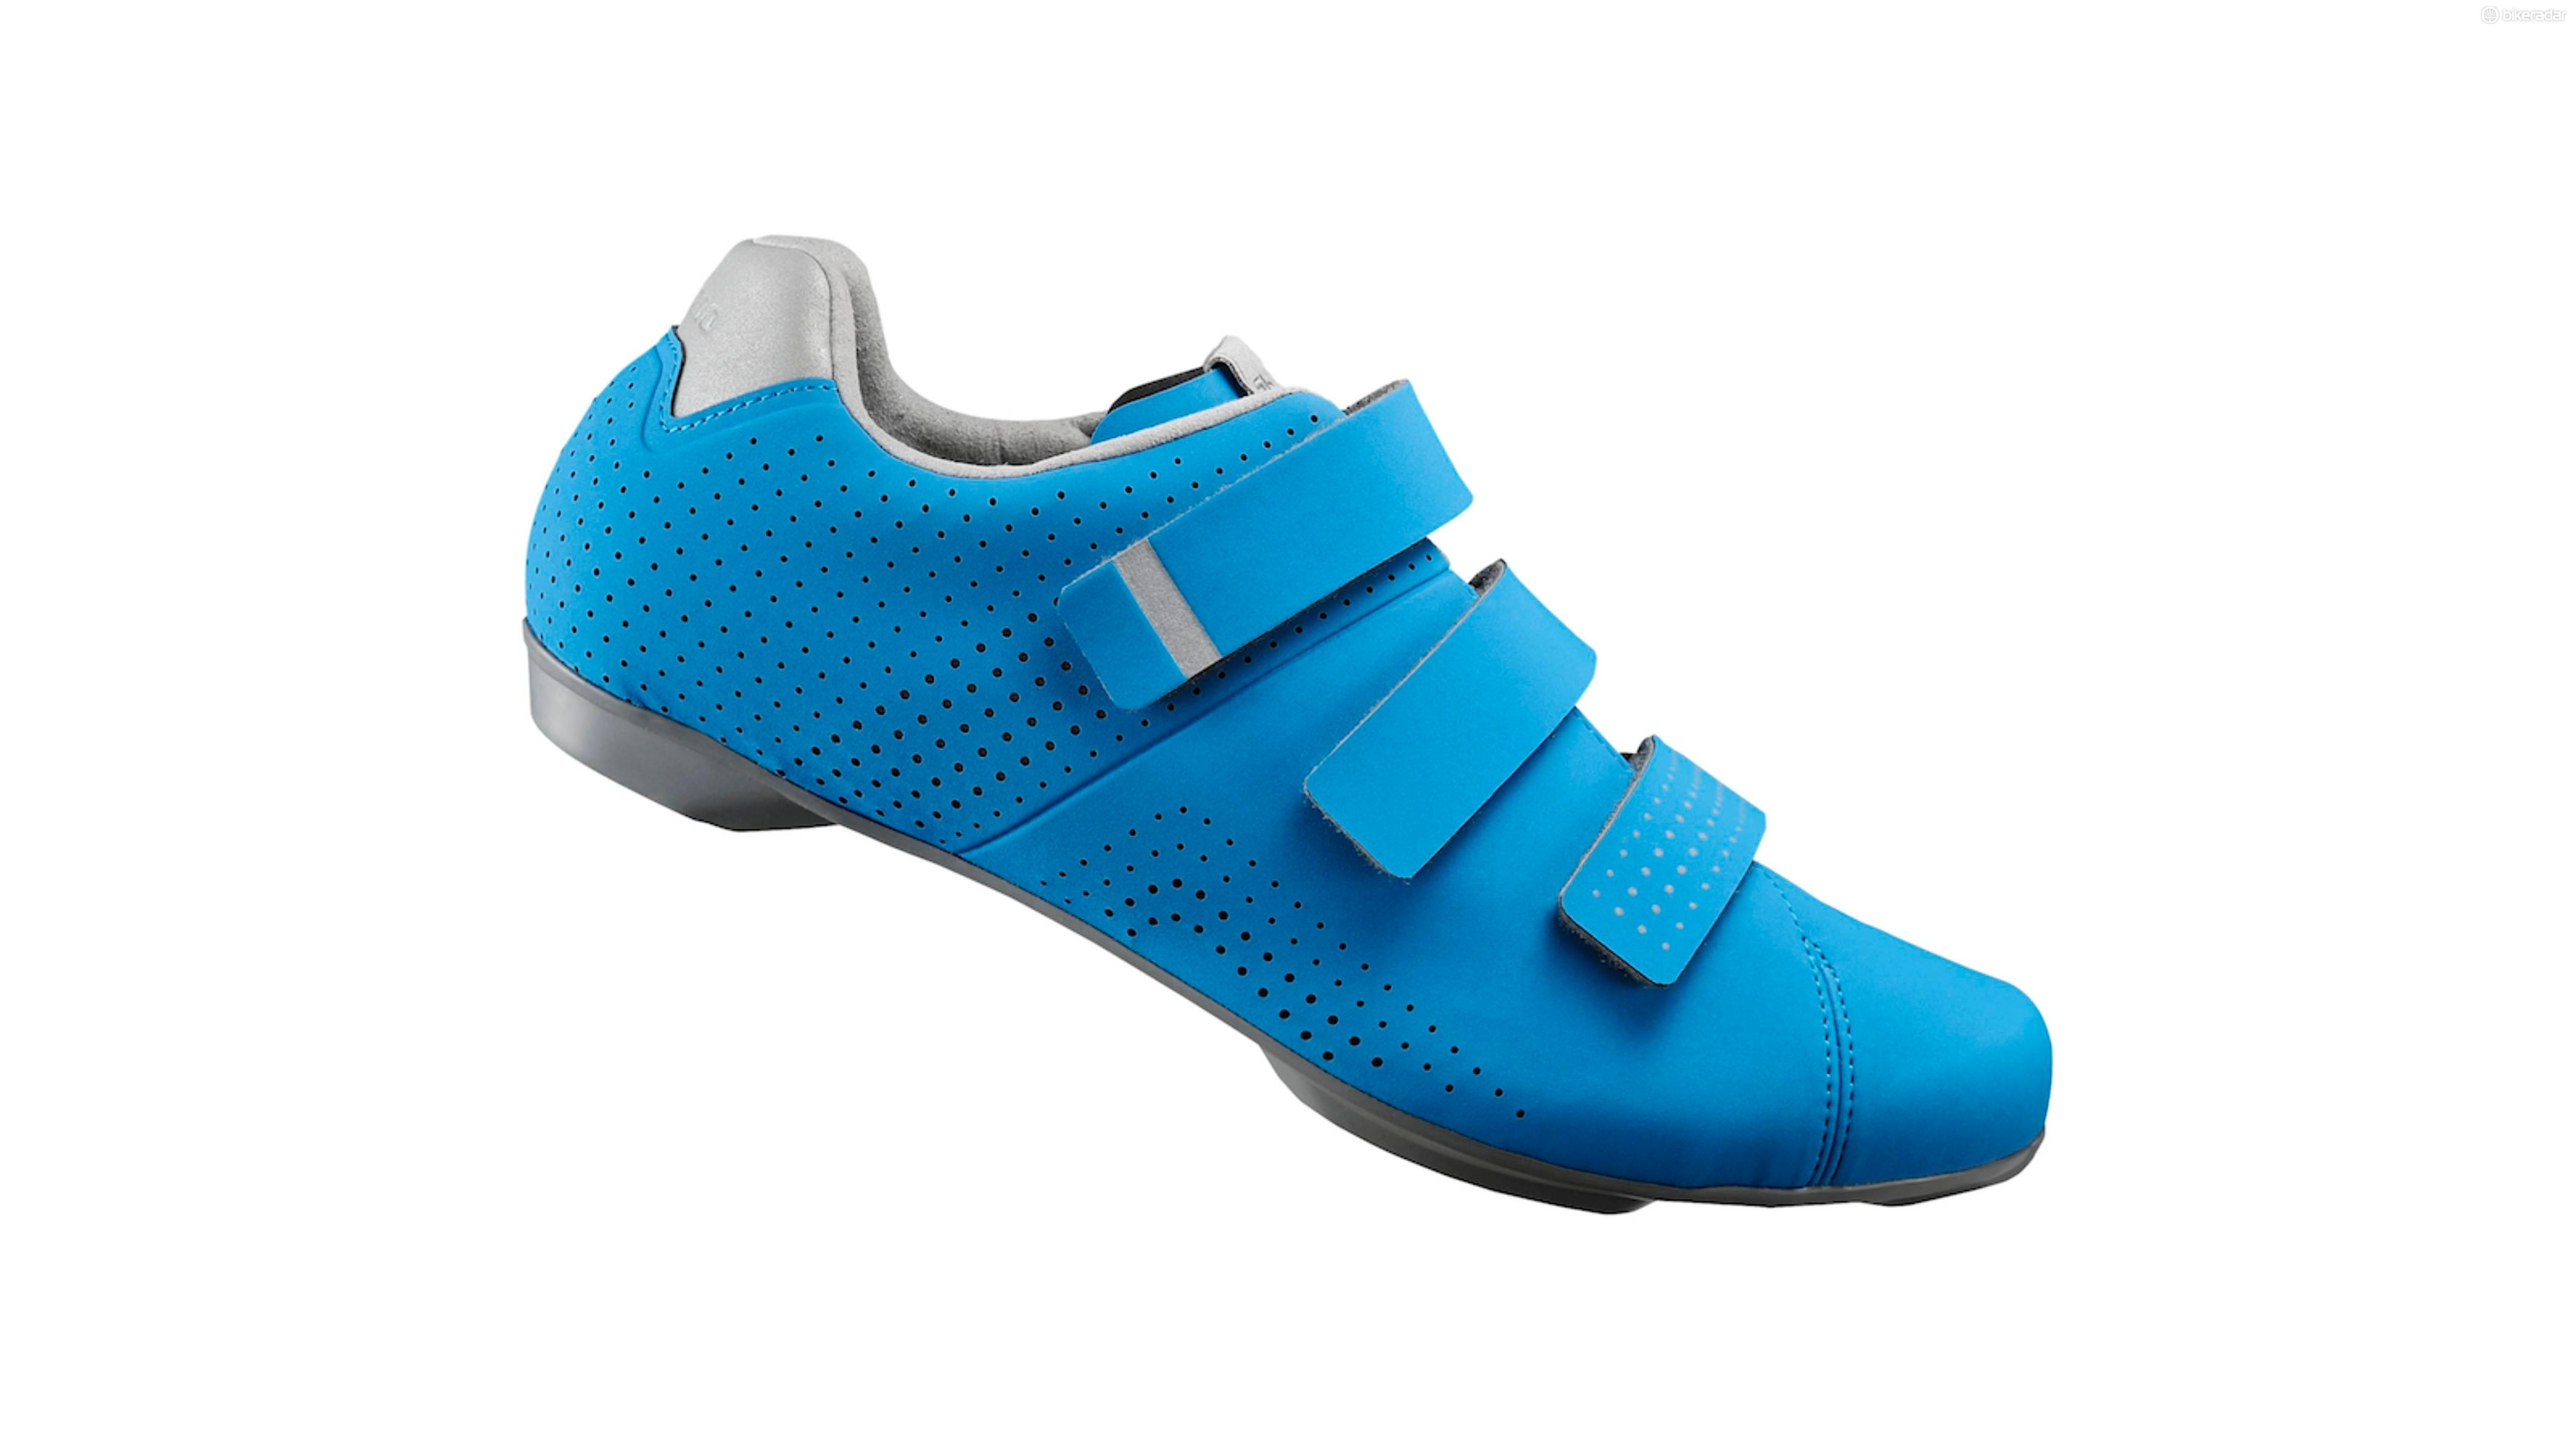 These RT4 shoes remind us a lot of Rapha's Climber's Shoe